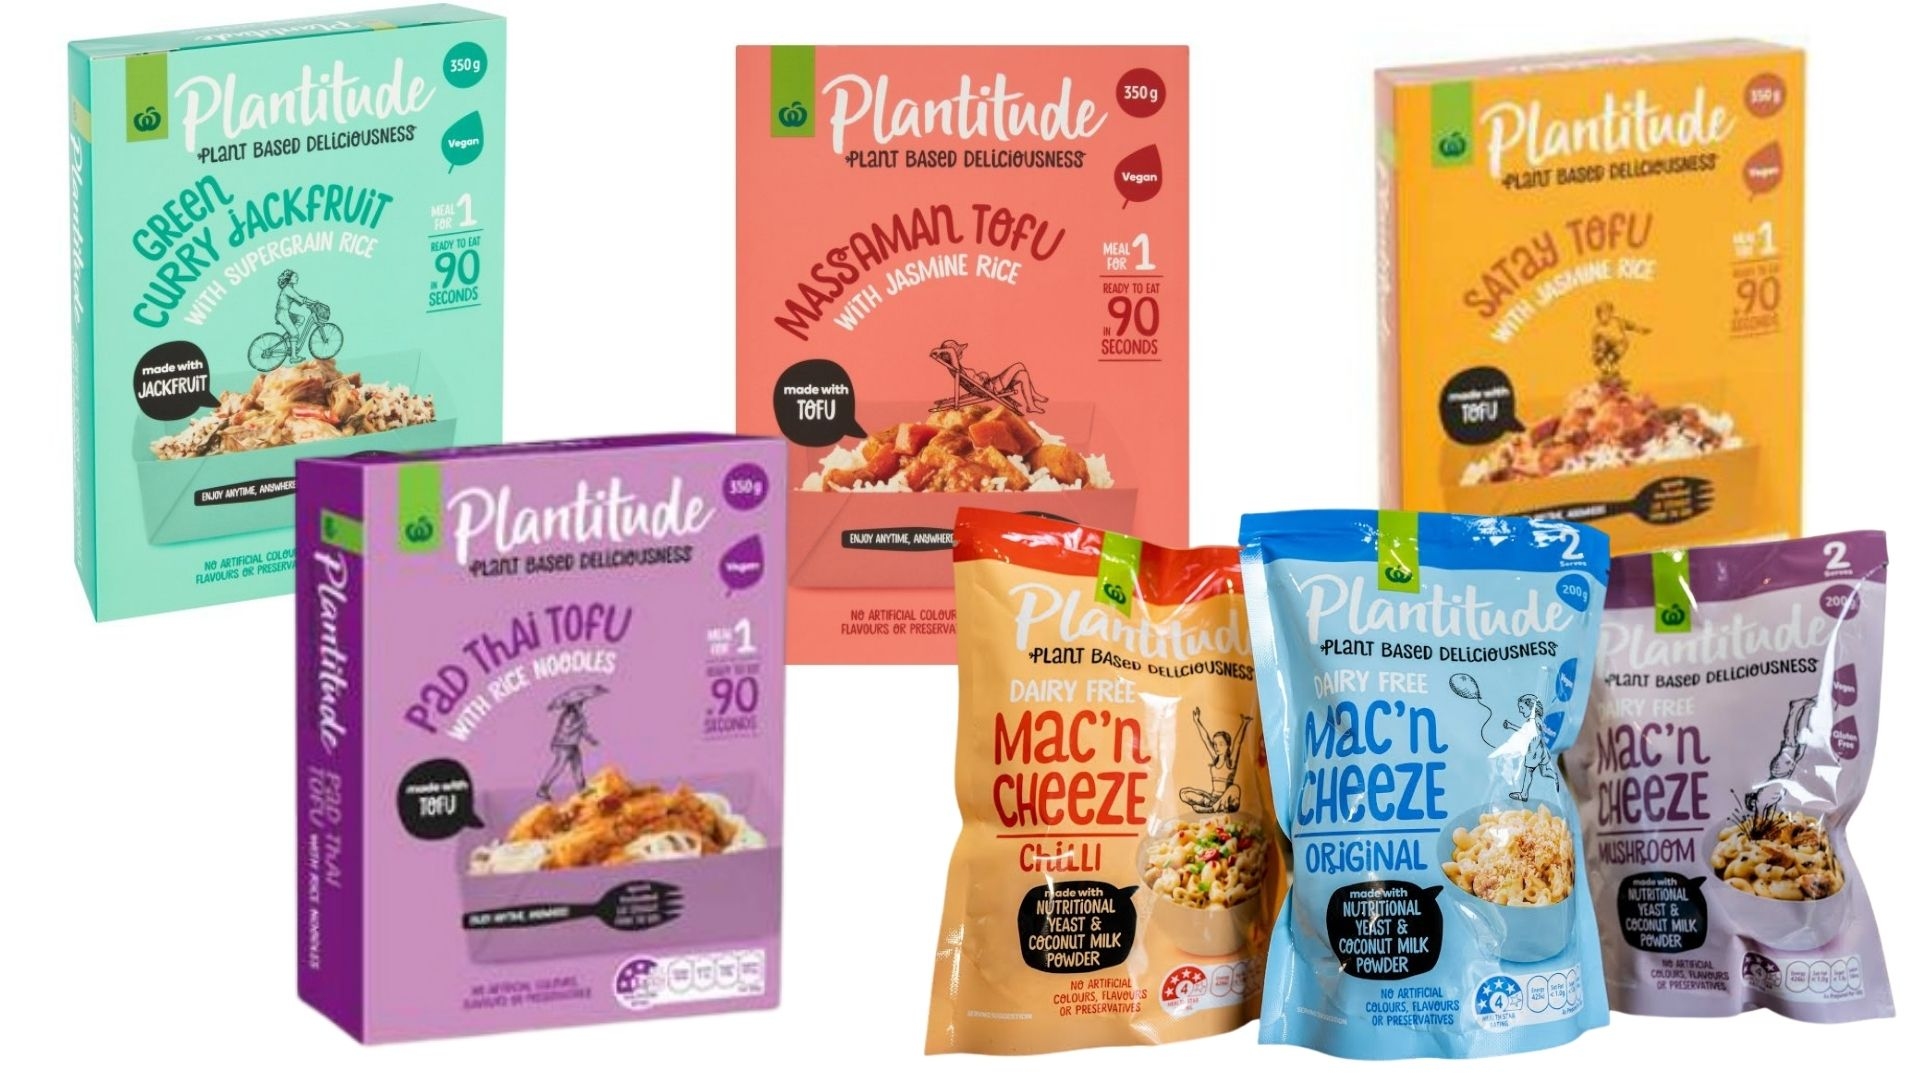 Ready made meals from Plantitude.